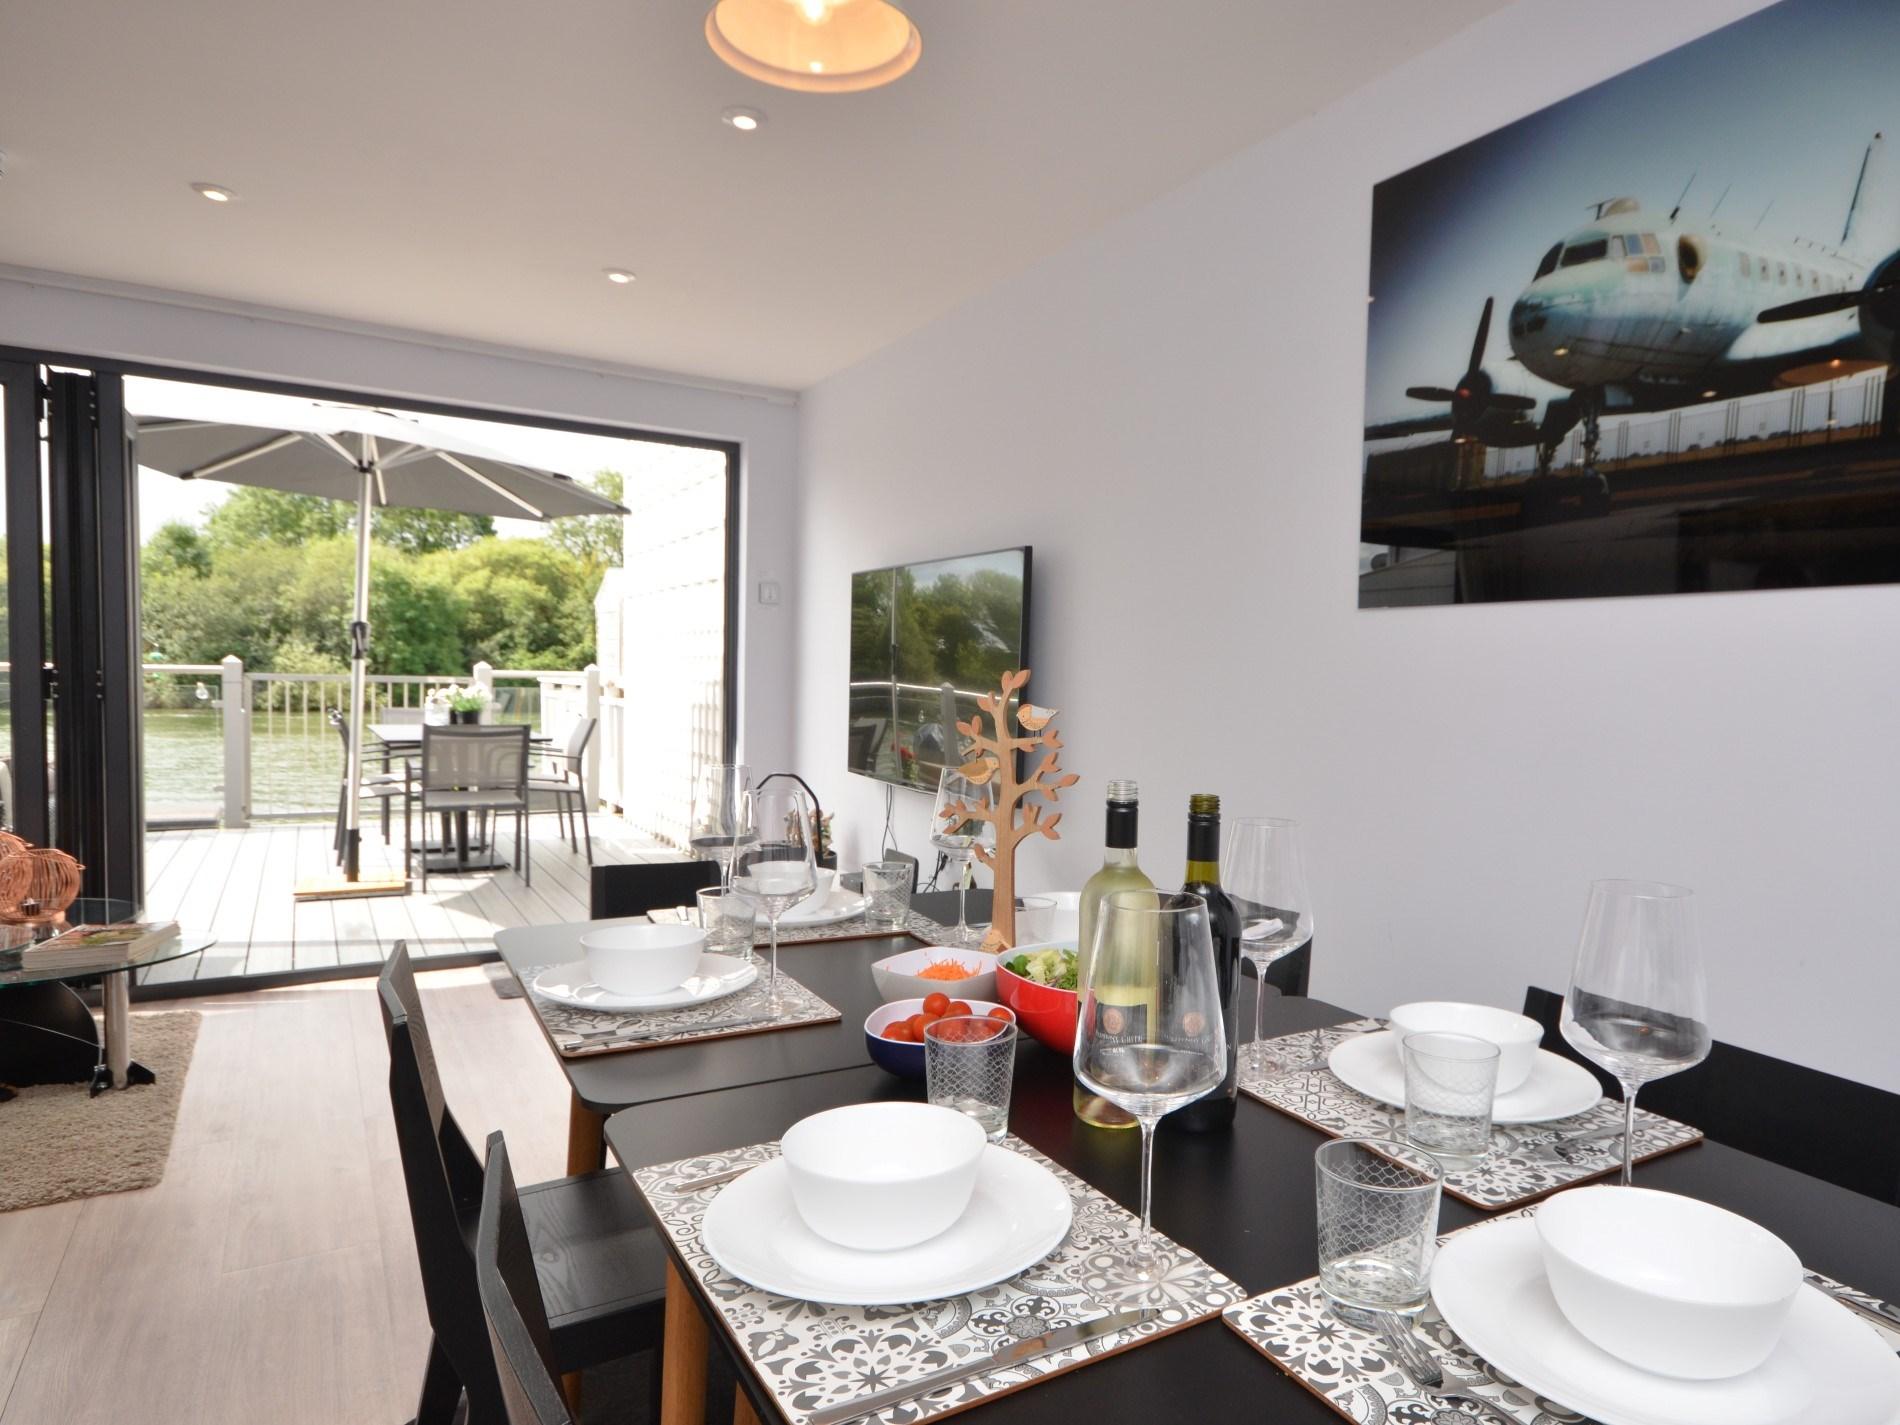 Enjoy supper with views onto the lake